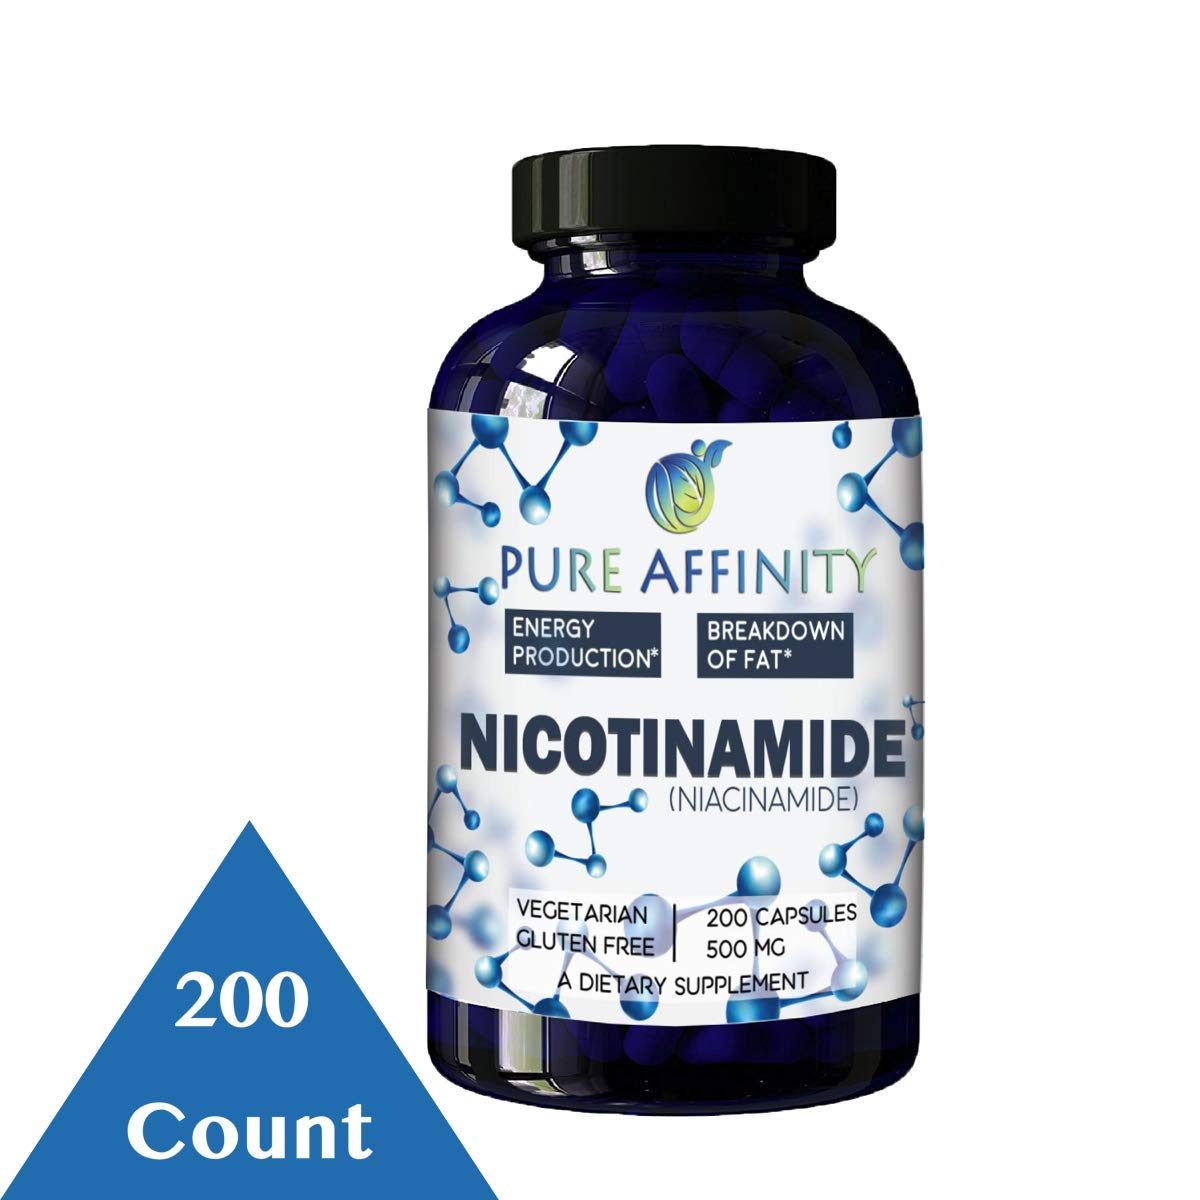 200 Count! B3 Nicotinamide 500 mg Effective Flush-Free Niacin. Energy Booster, Cell Regenerator, Supports Cognitive Decline, Anti-Aging and Helps Breaks Down Carbs & Fats (200 Ct) by Pure Affinity LLC